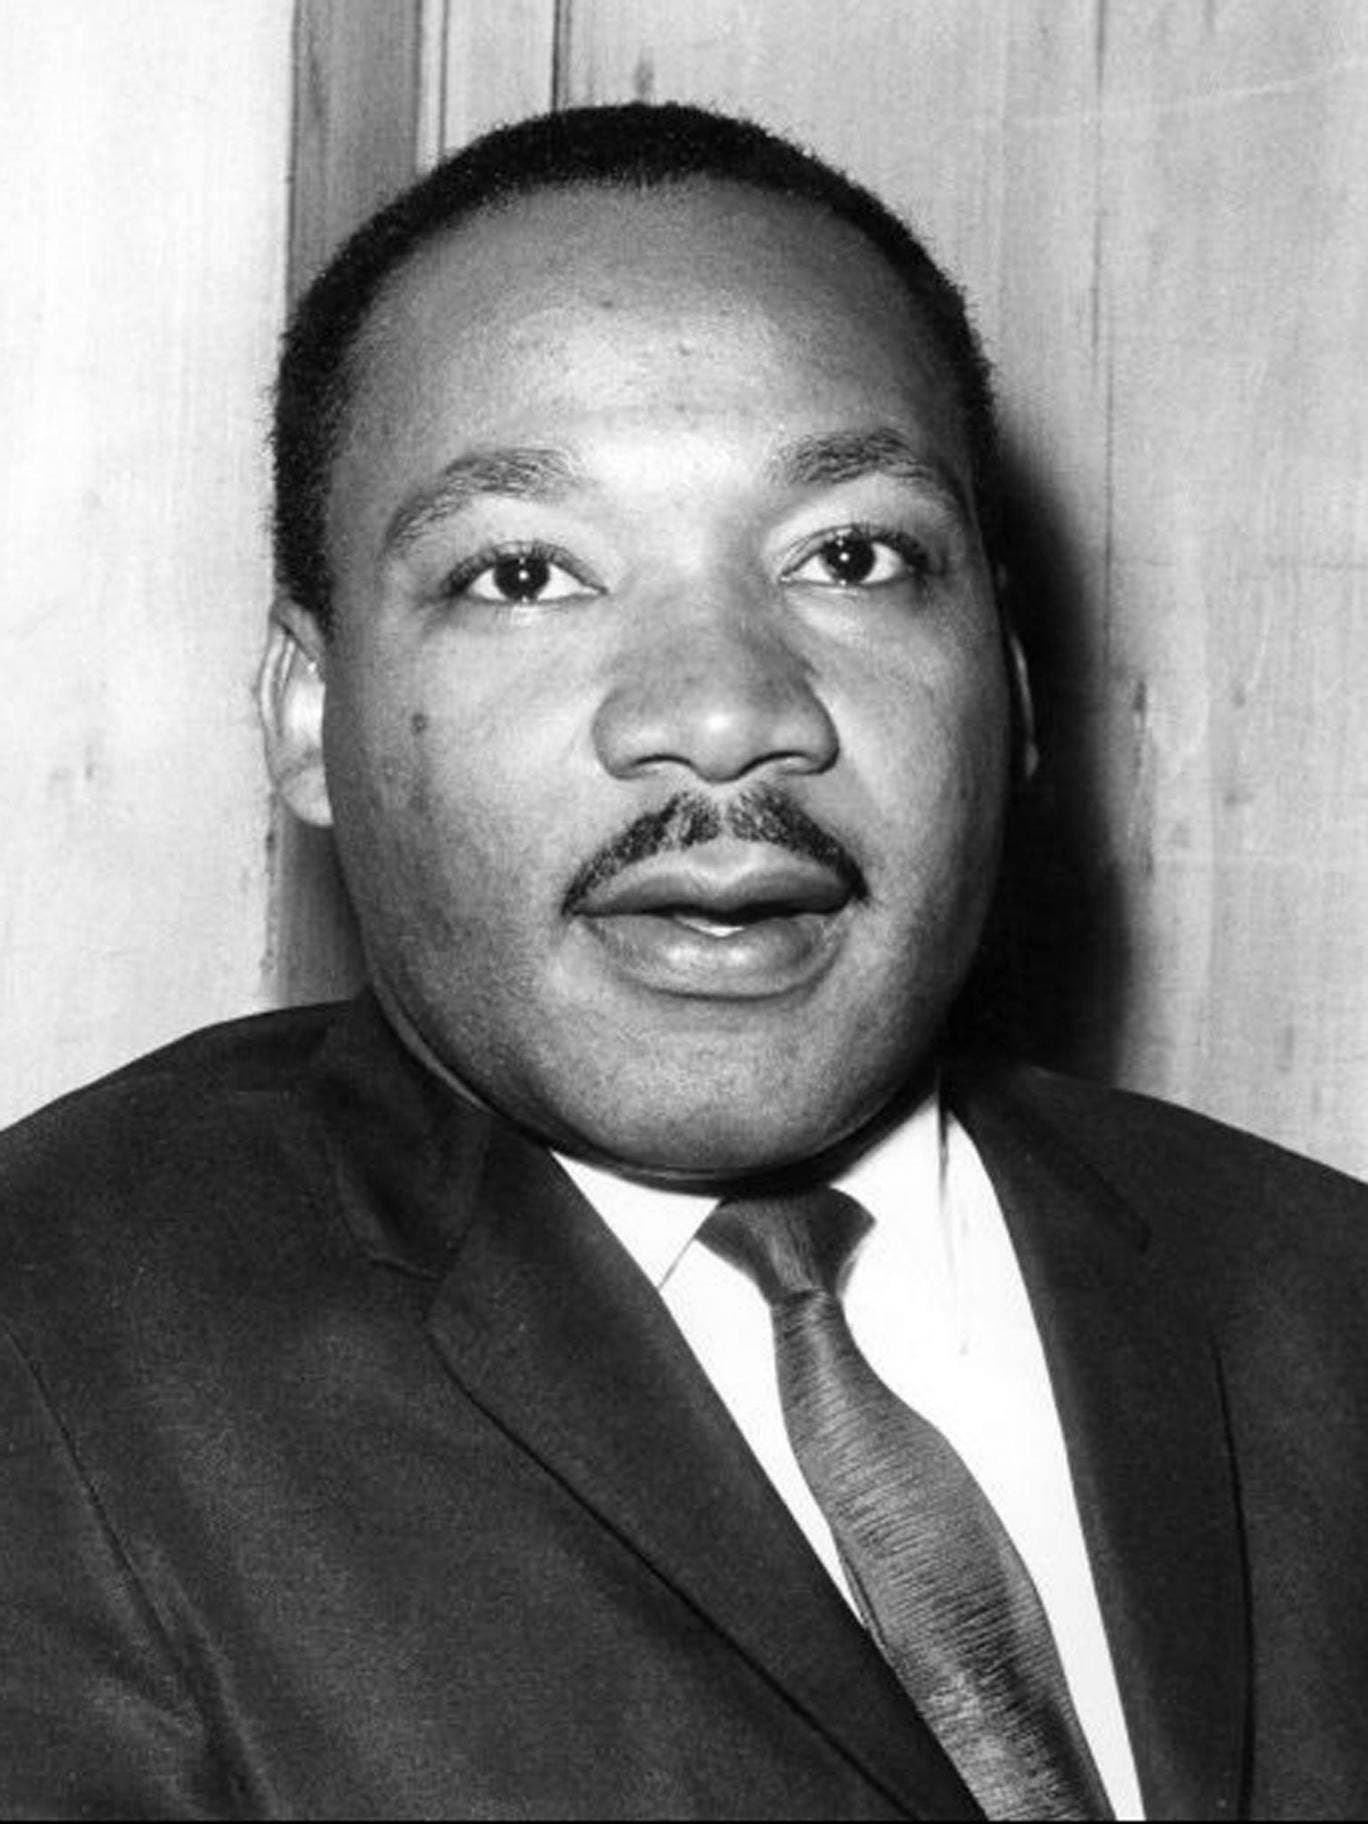 Martin Luther King had been imprisoned for taking his campaign of non-violent protest to the streets of Birmingham, Alabama